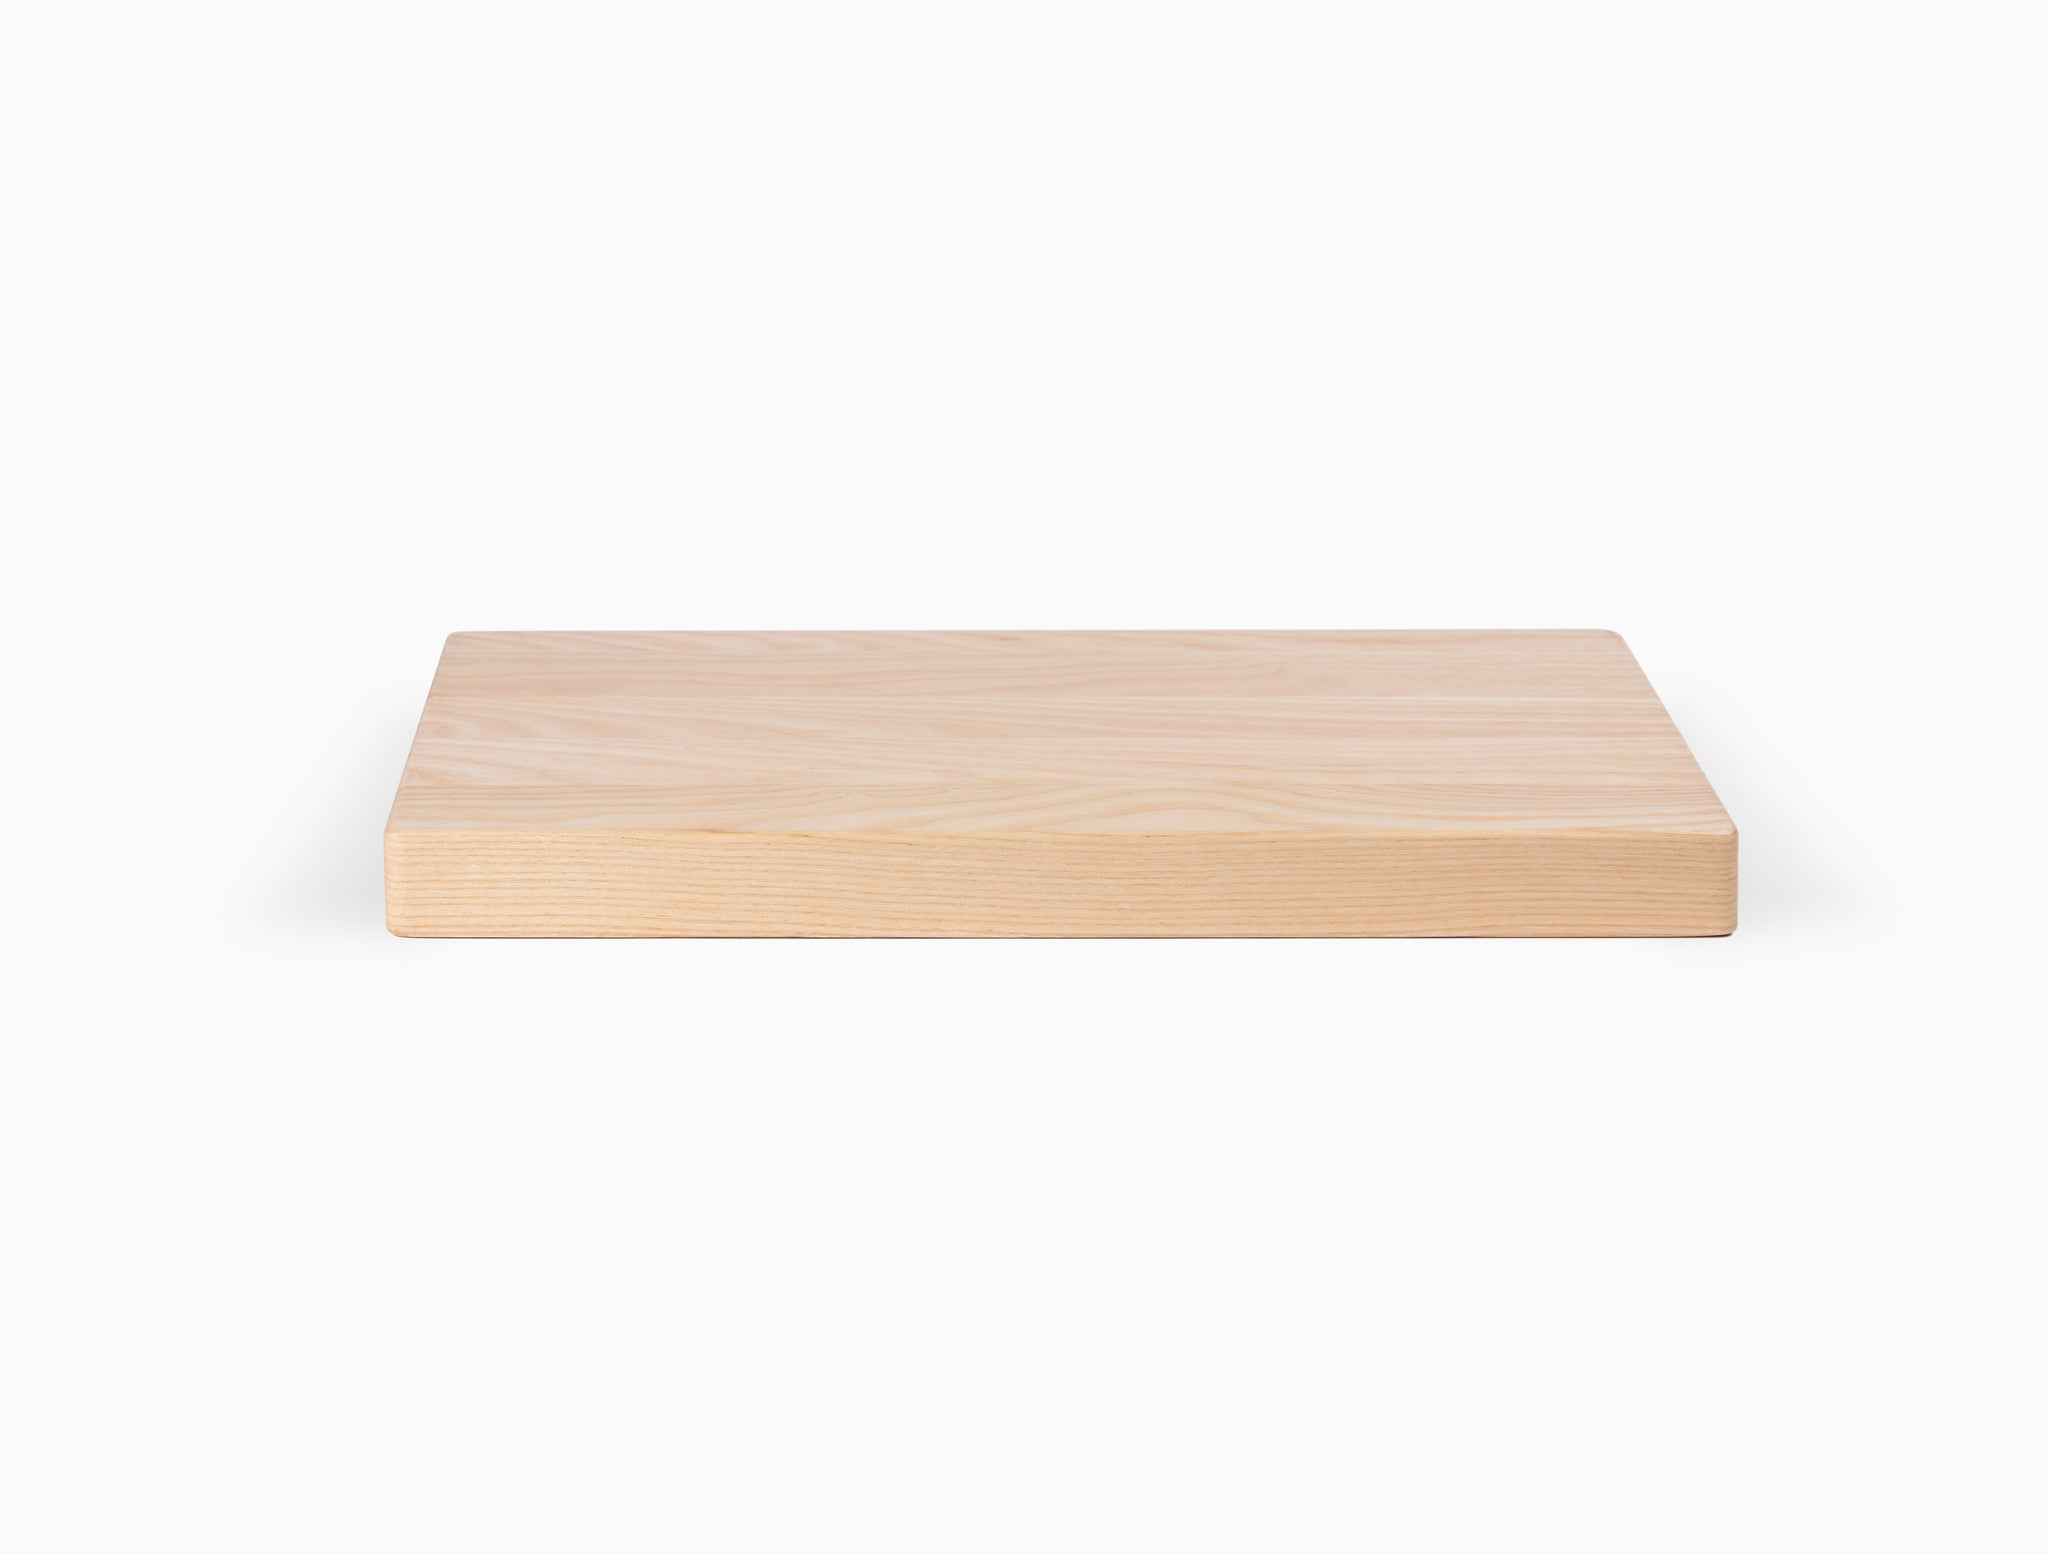 Misen Cutting Board in ash wood